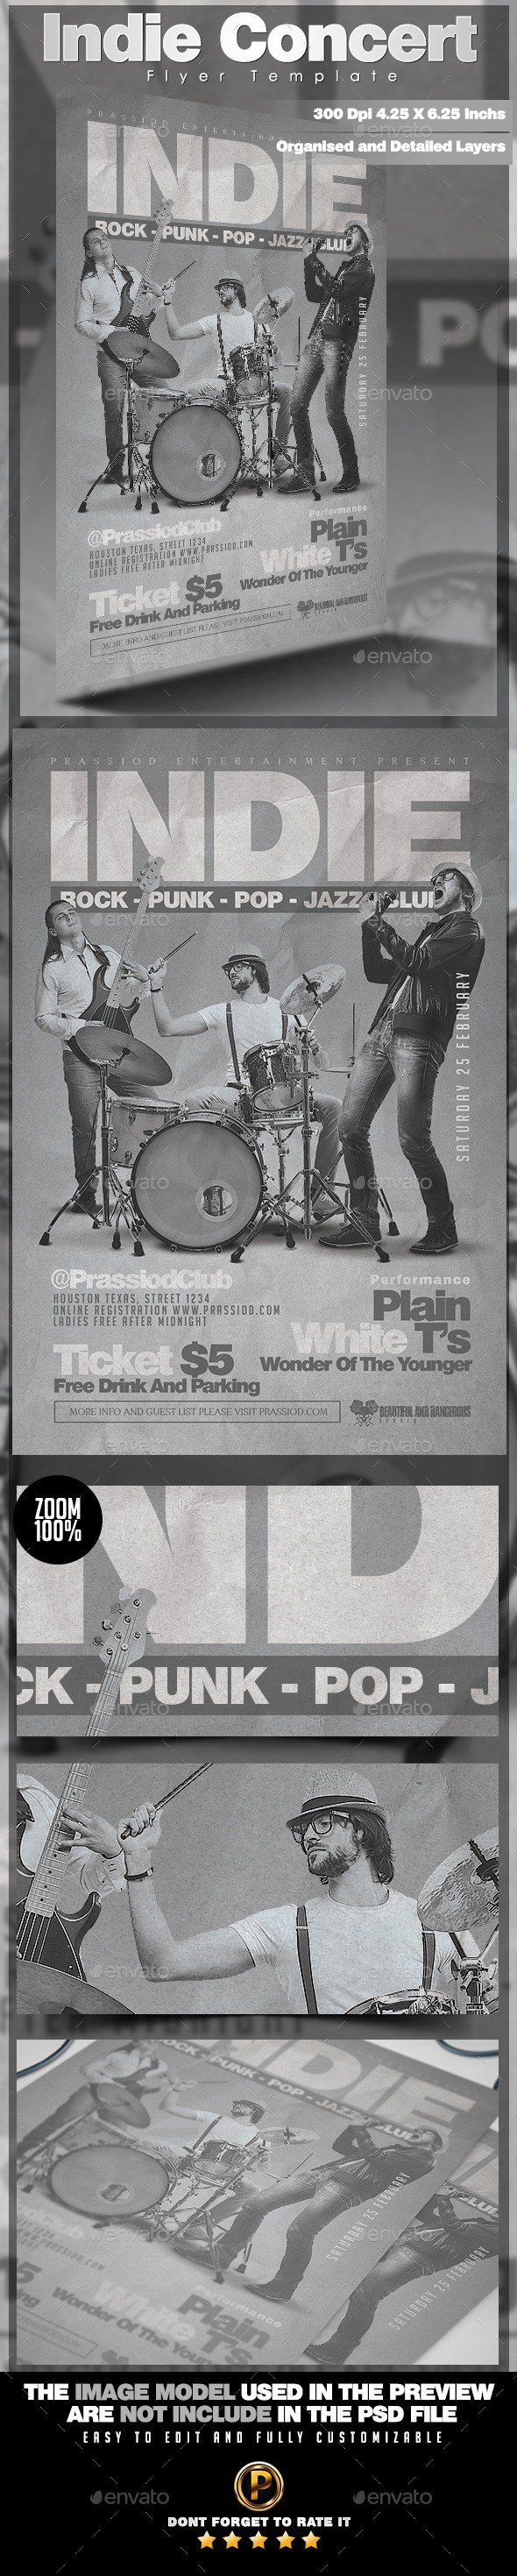 Indie Concert Flyer Template - Concerts Events